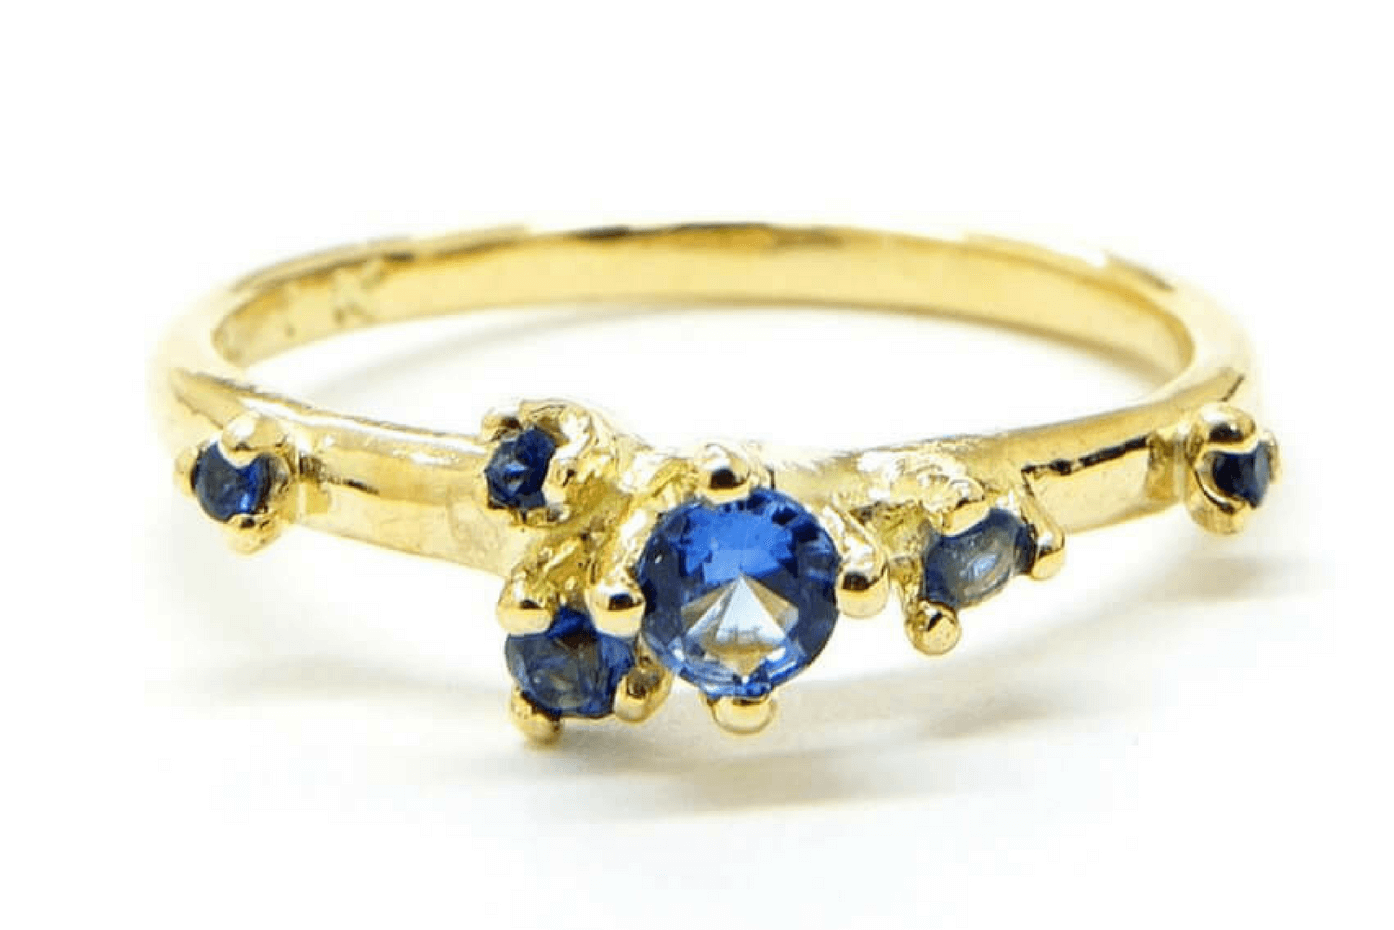 18K Yellow Gold Ring with Blue Sapphire by n+a new york